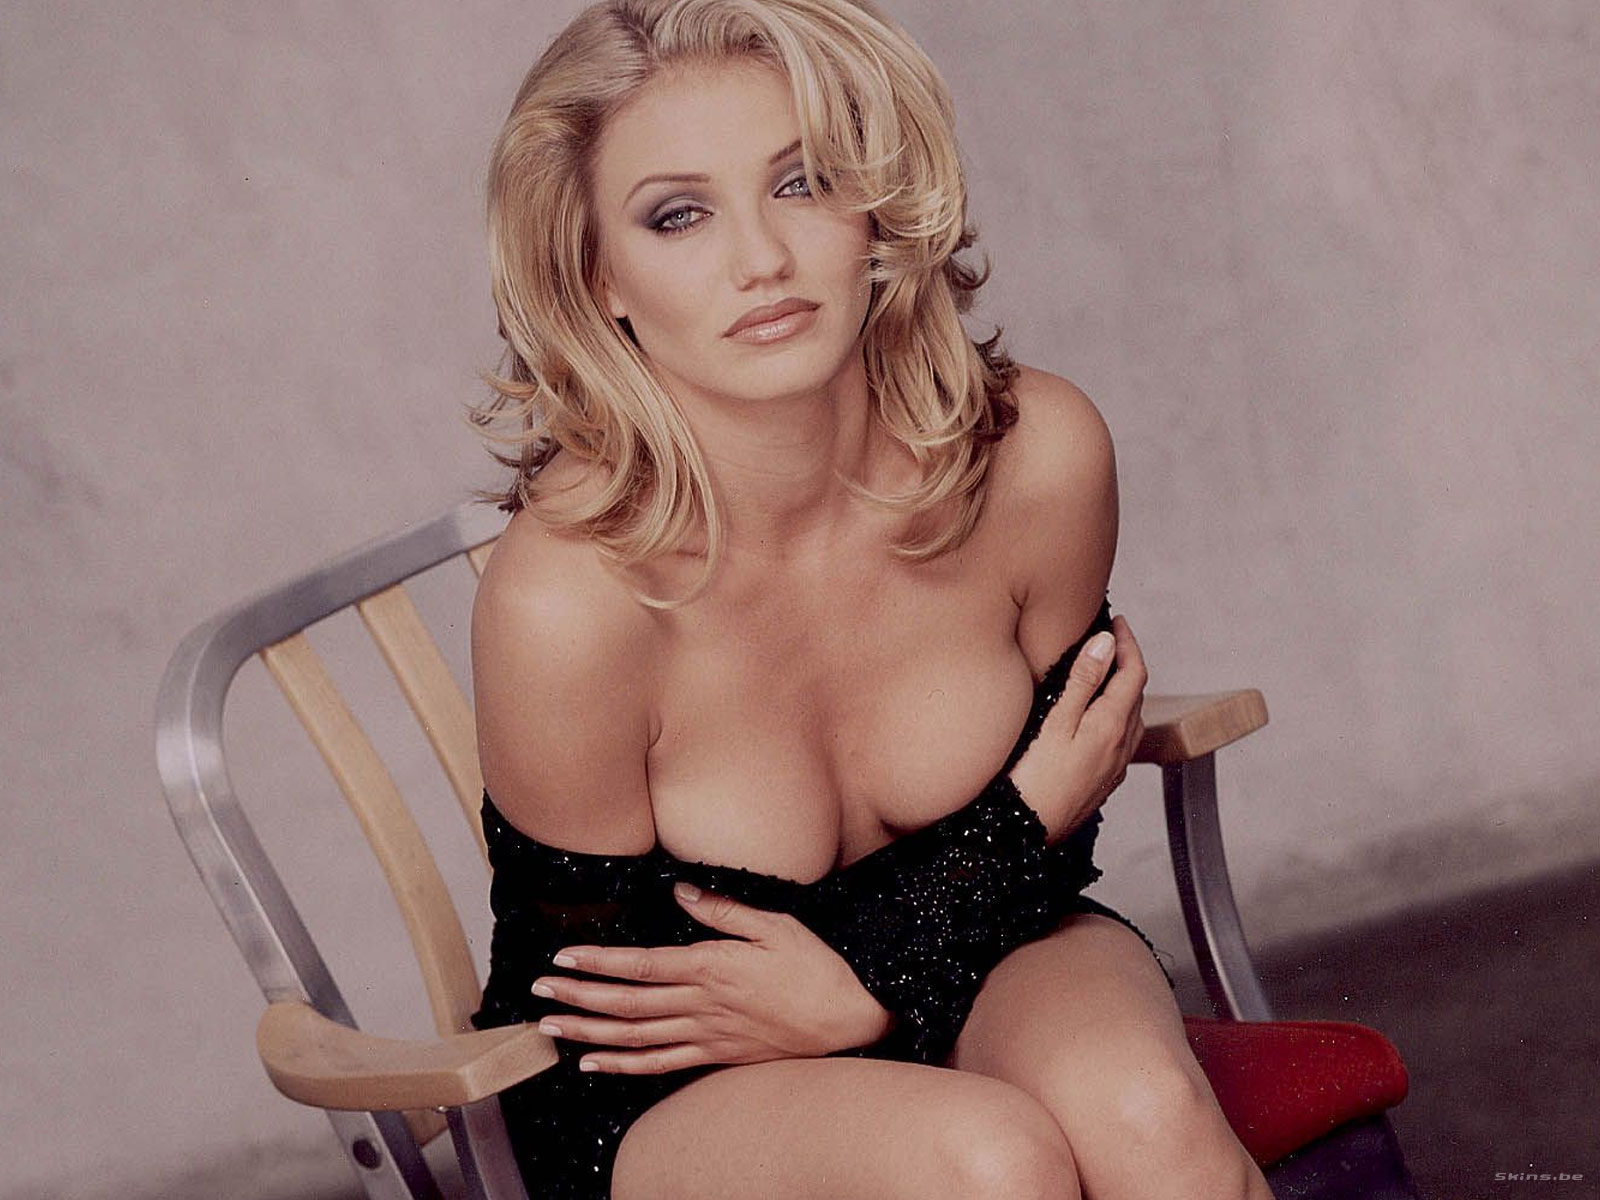 hollywood all stars cameron diaz hot picture. Black Bedroom Furniture Sets. Home Design Ideas